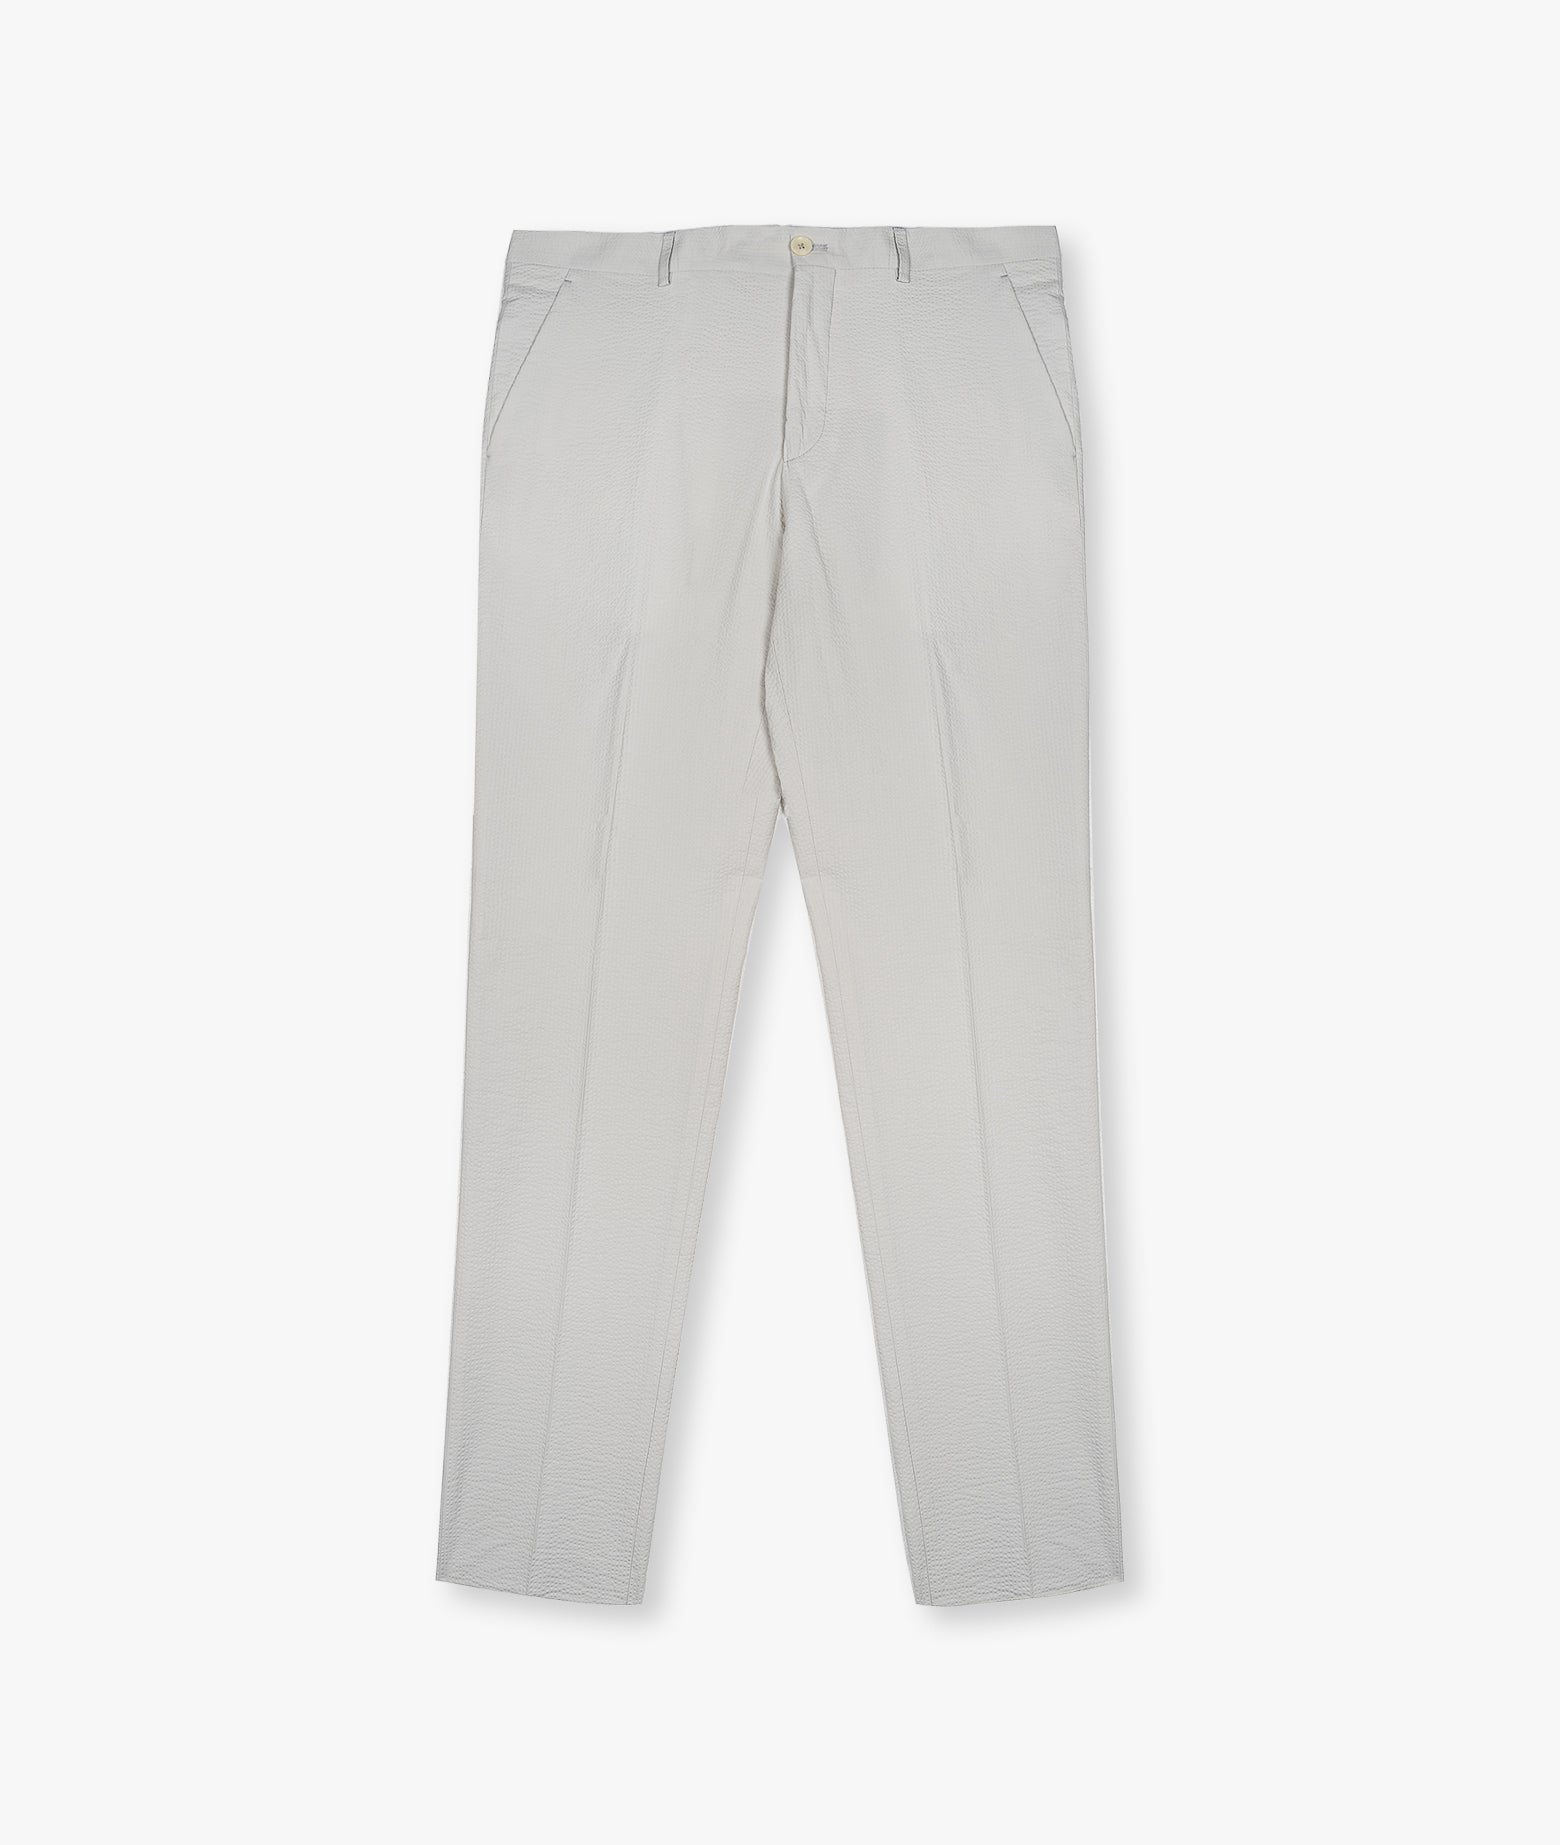 """5th Ave"" Trousers"